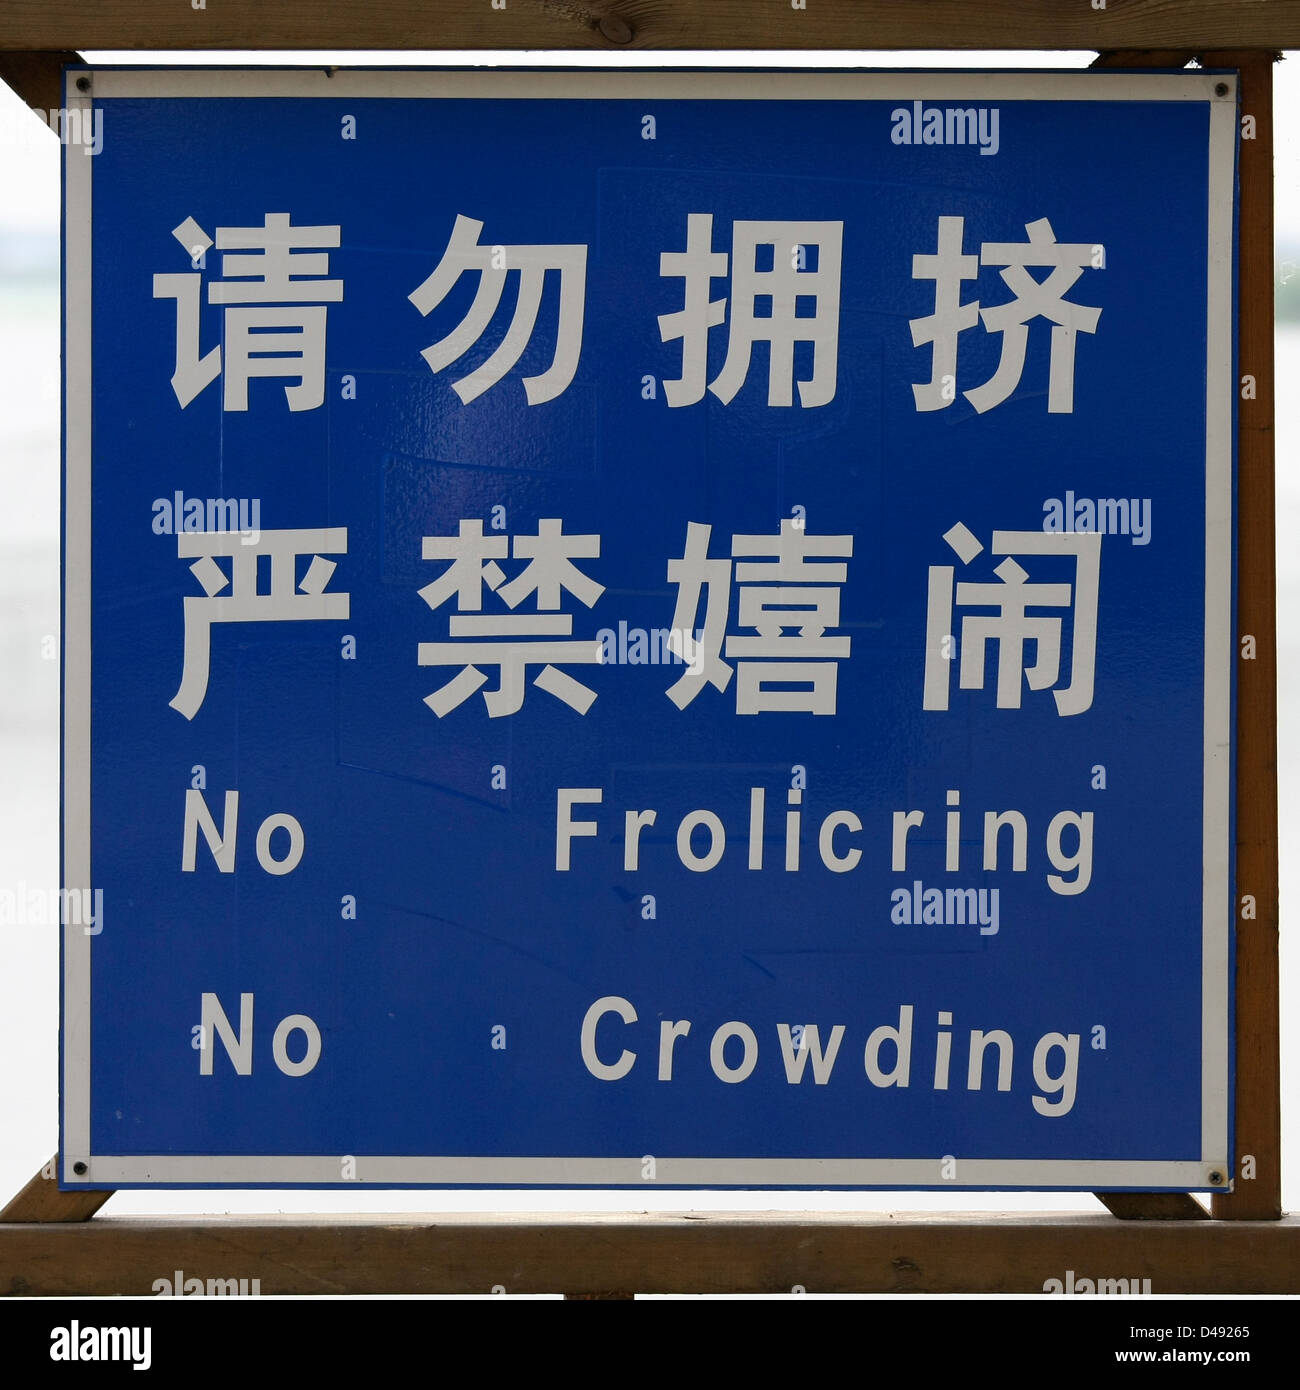 A sign in China with the English translation in correctly spelled. - Stock Image